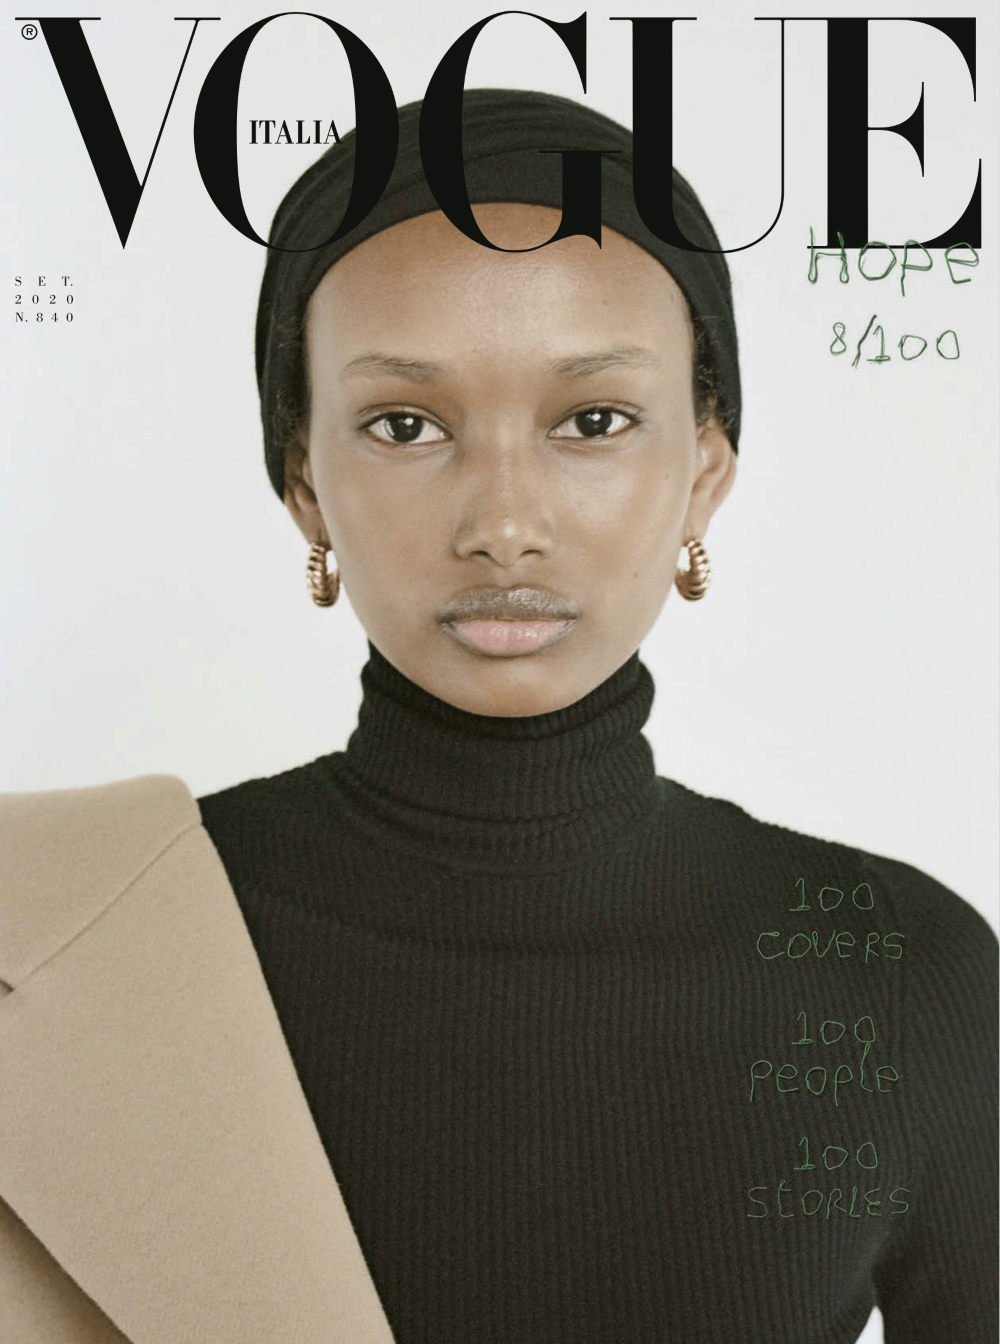 Vogue Italia taps 100 personalities for September 2020 issueVogue Italia taps 100 personalities for September 2020 issue